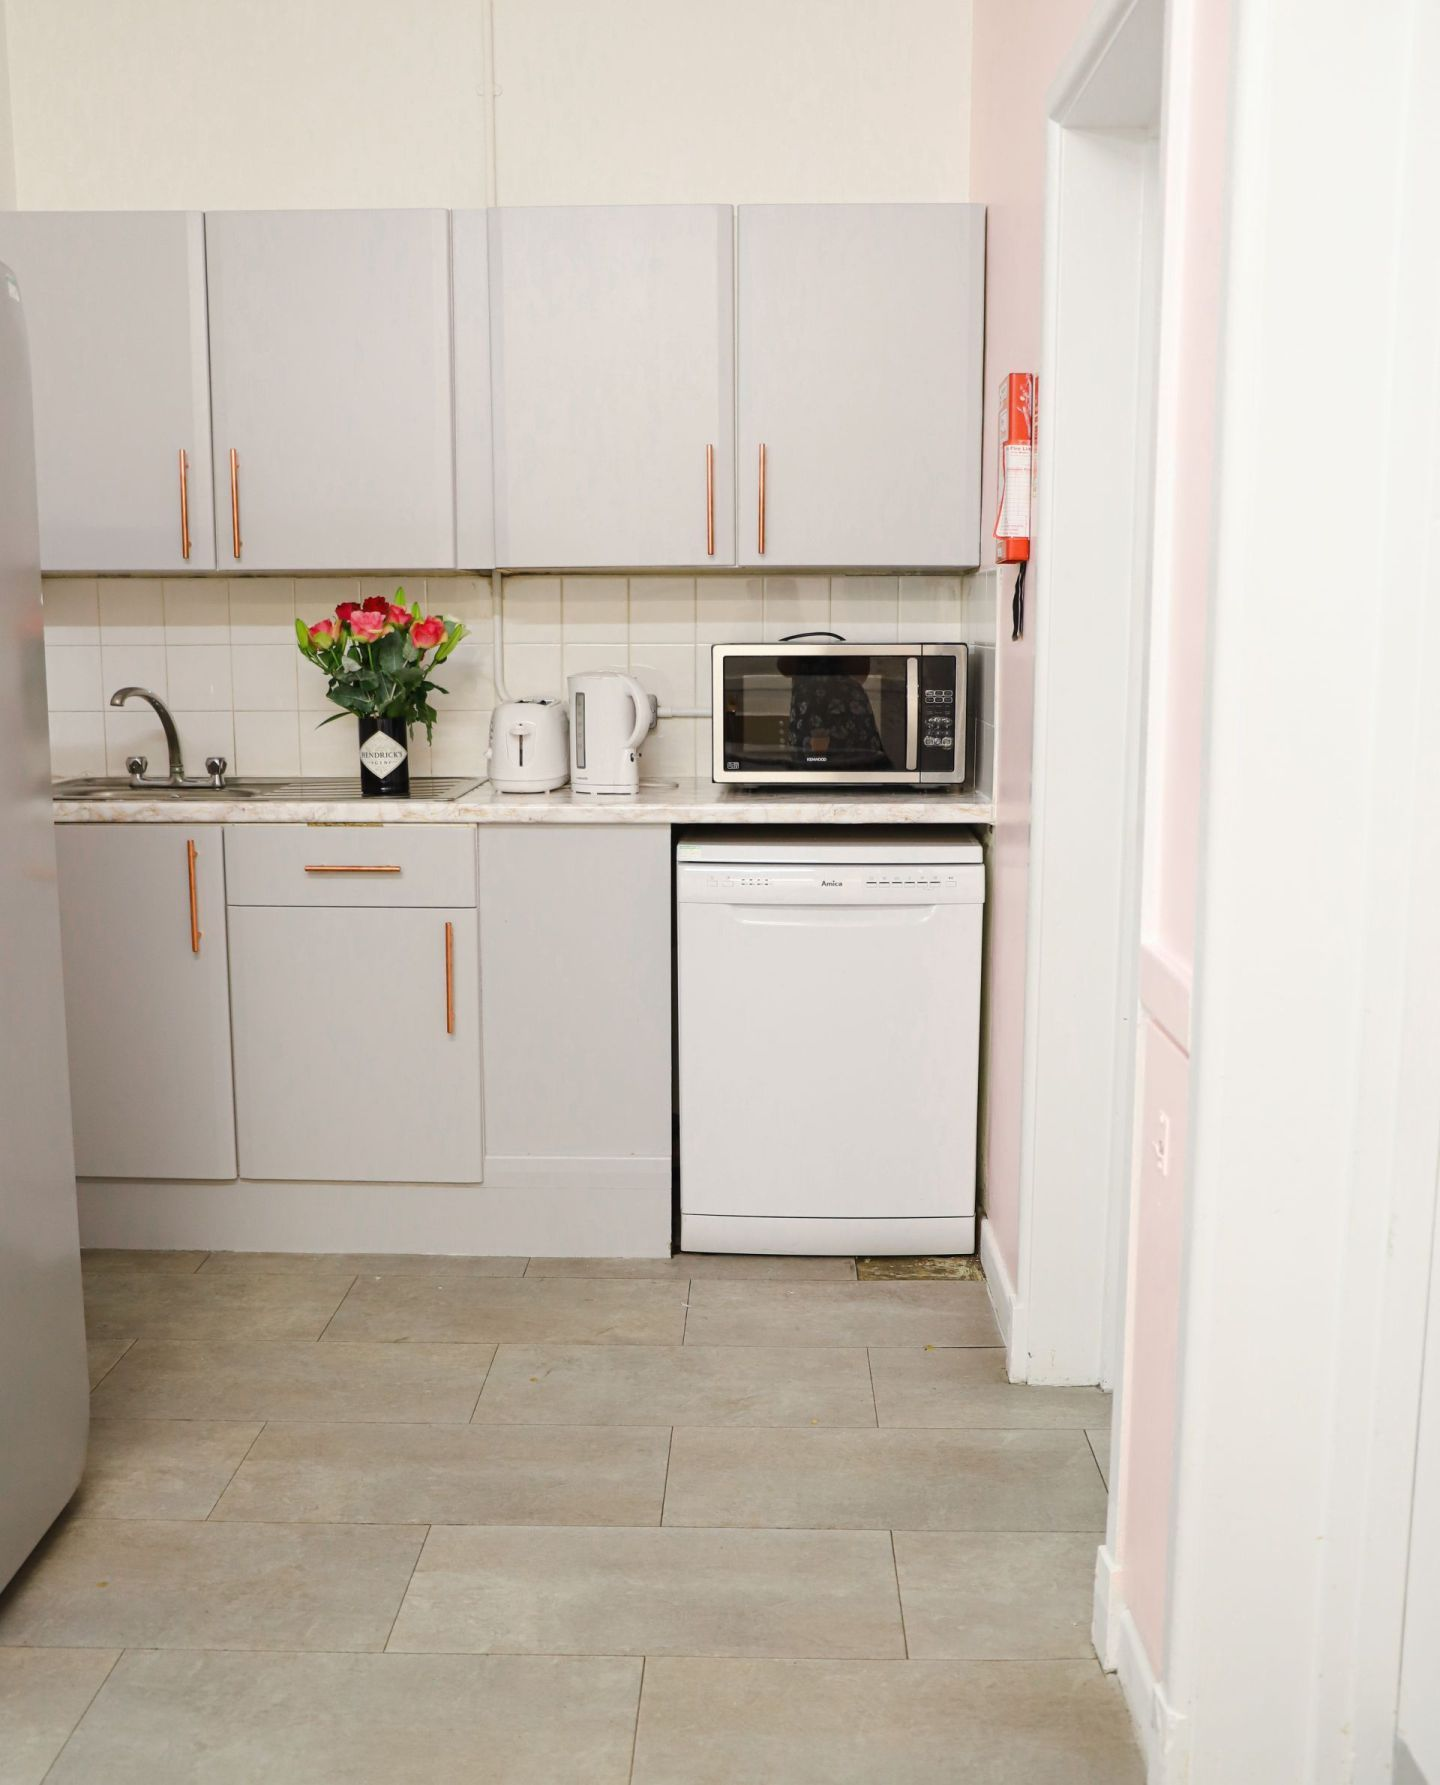 How To Paint Laminated Kitchen Cabinets